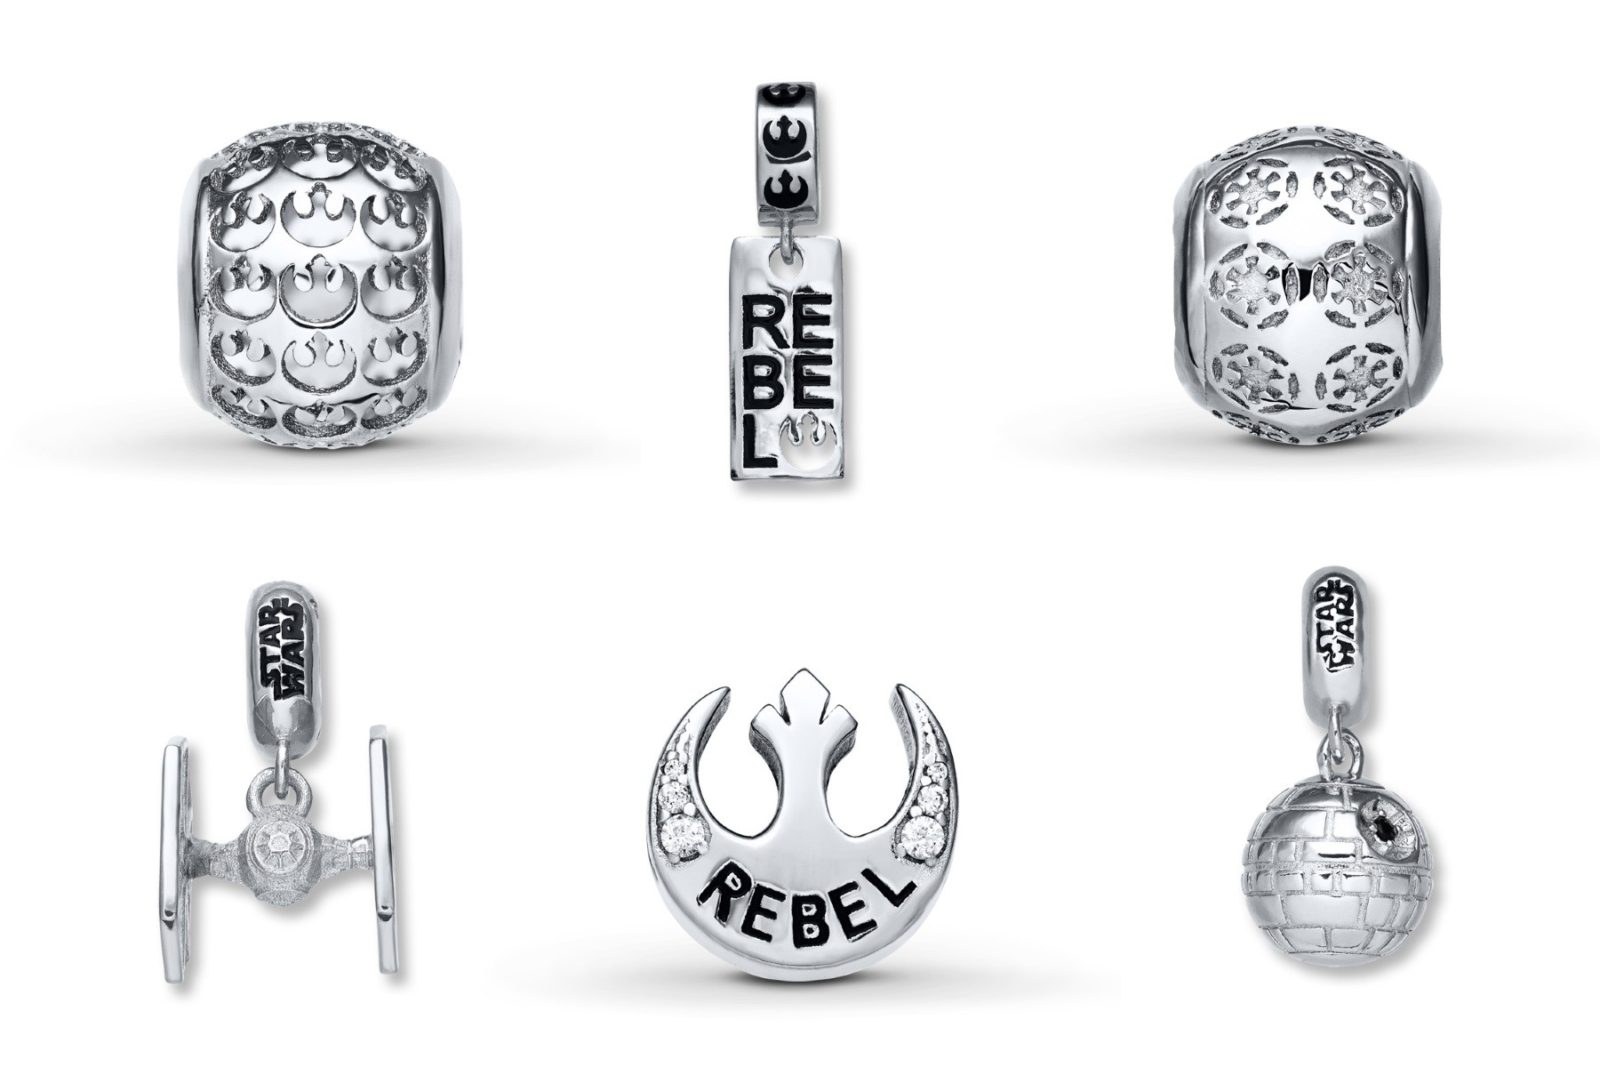 New Kay Jewelers x Star Wars charms - The Kessel Runway